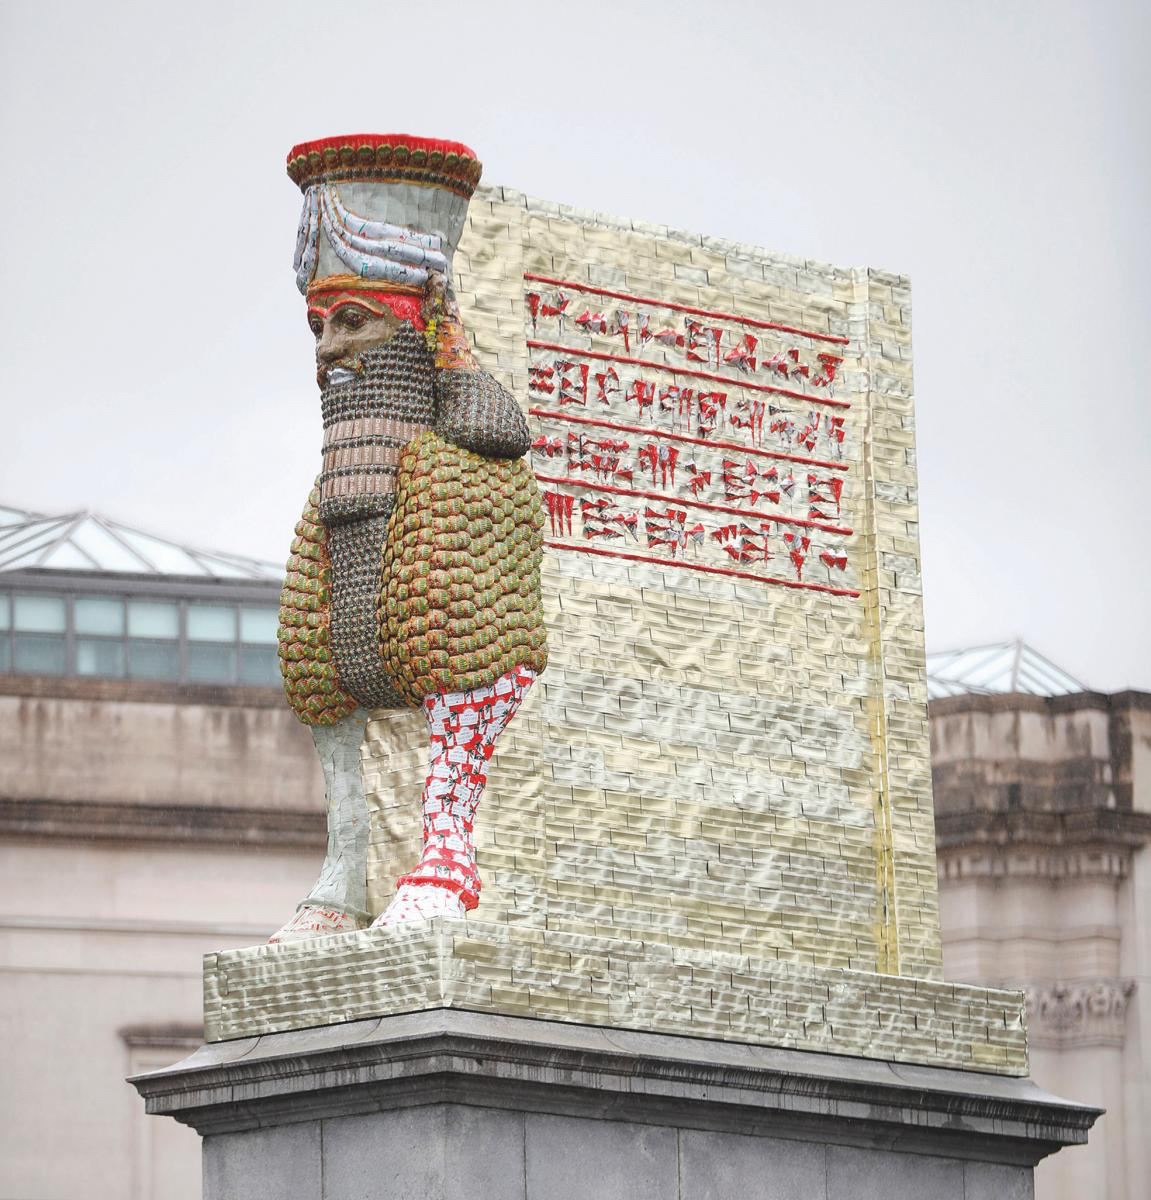 The Invisible Enemy Should Not Exist, Fourth Plinth, 2019